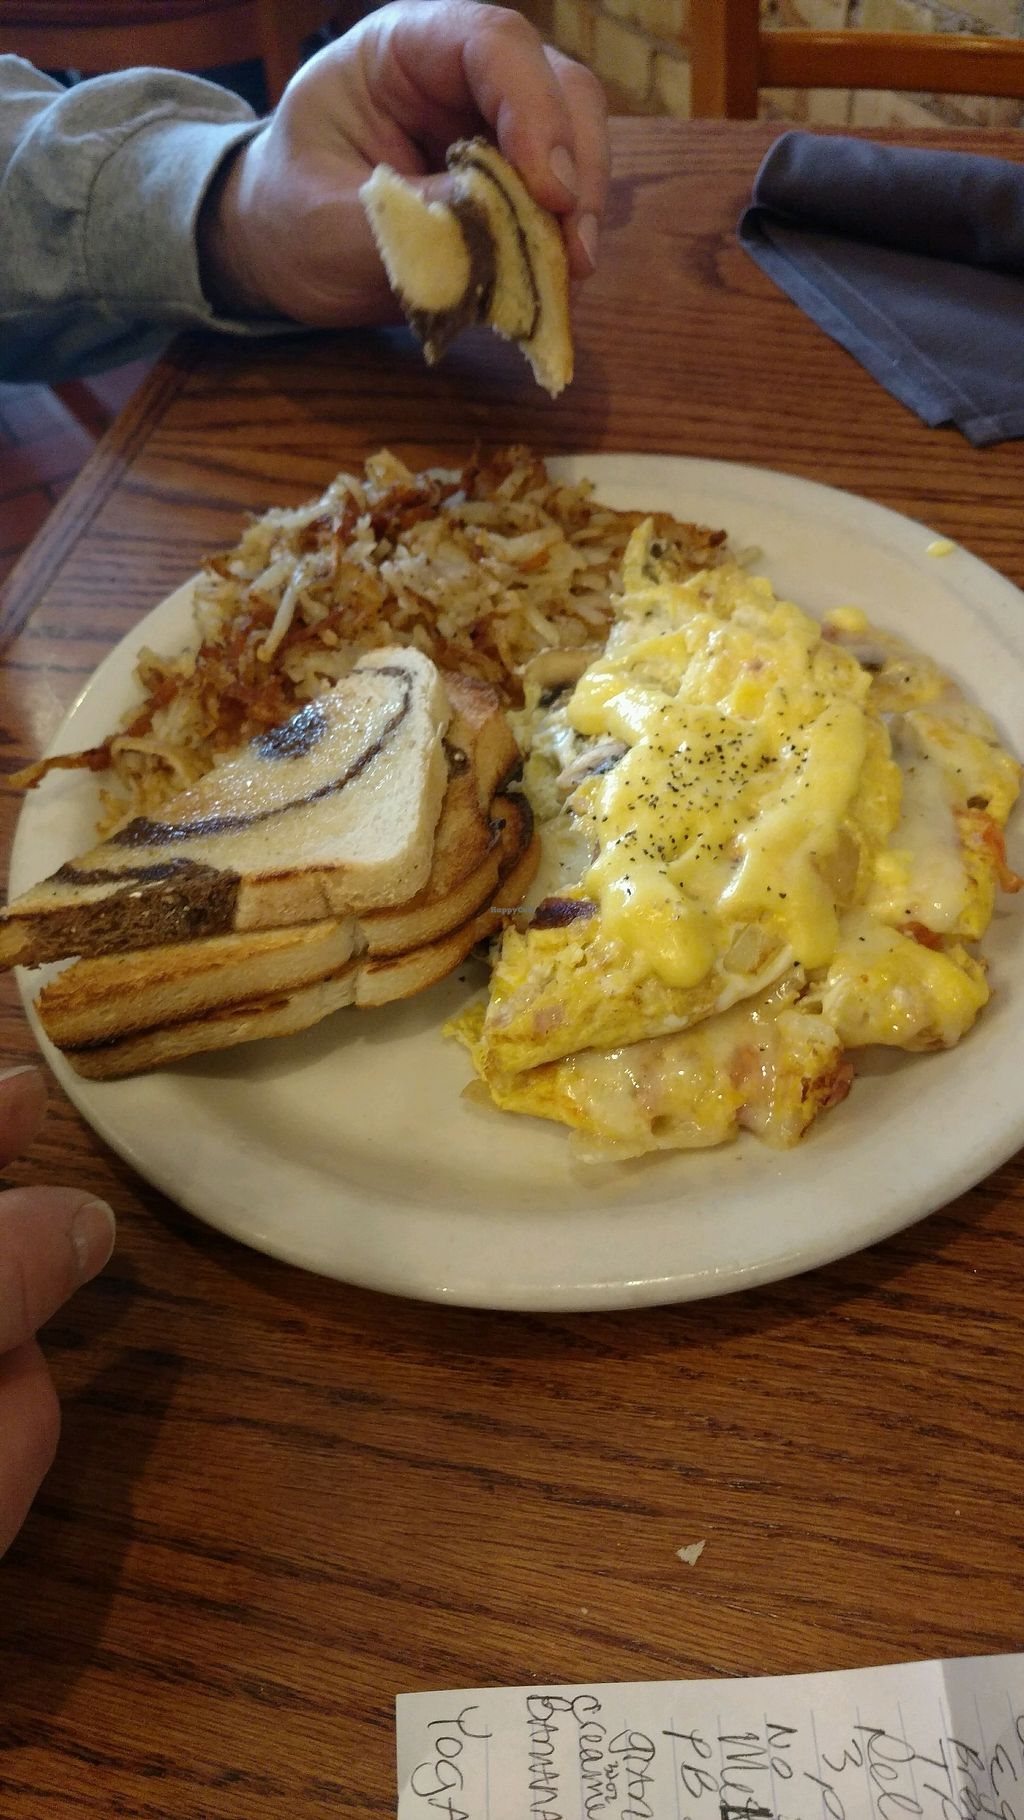 """Photo of Soup Spoon Cafe  by <a href=""""/members/profile/Queensnake88"""">Queensnake88</a> <br/>omelette and rye toast <br/> December 4, 2017  - <a href='/contact/abuse/image/54139/332323'>Report</a>"""